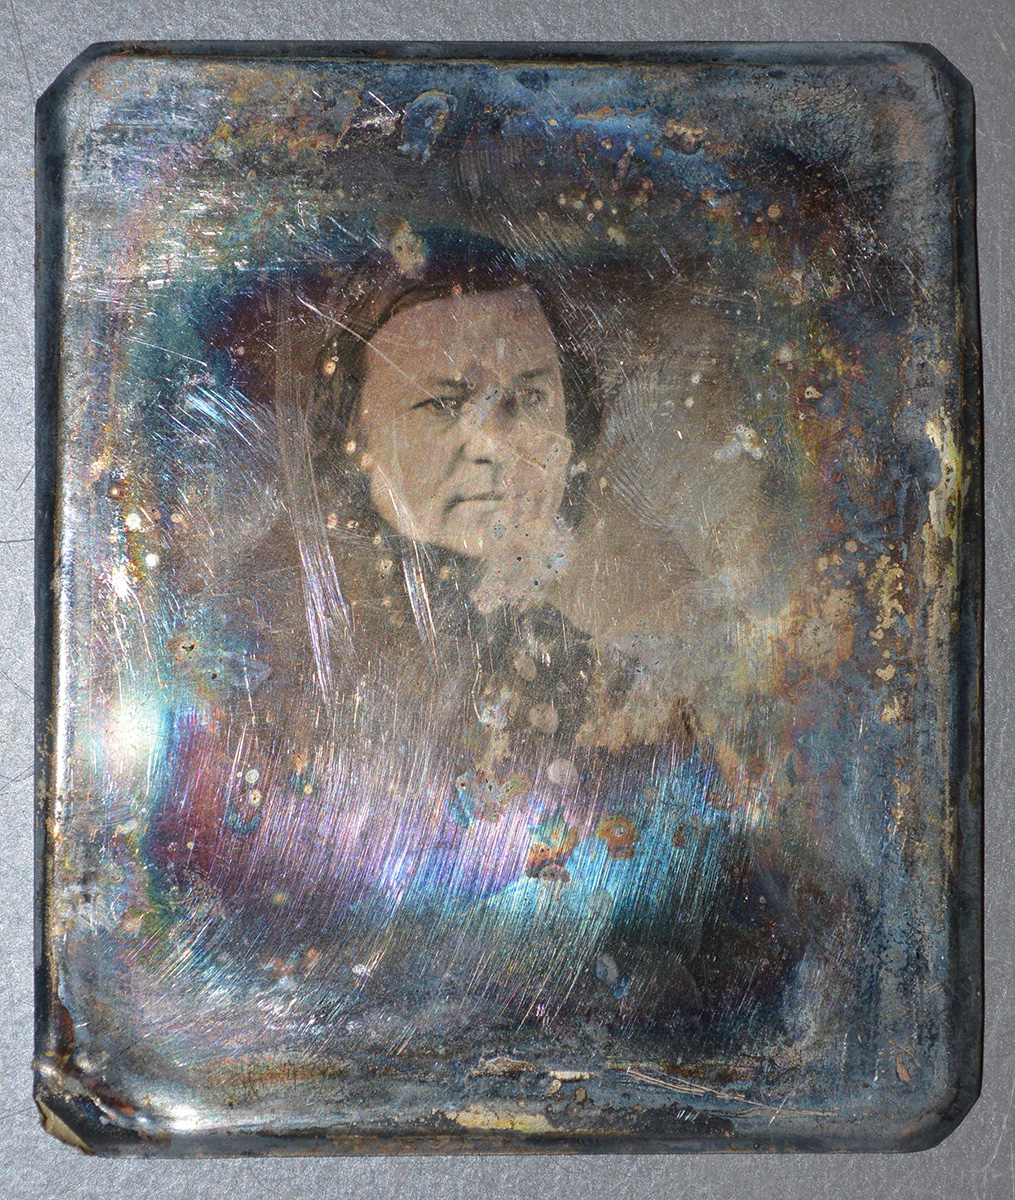 Rodman daguerreotype, McClelland Family Papers and Photographs, Detre Library & Archives at the History Center